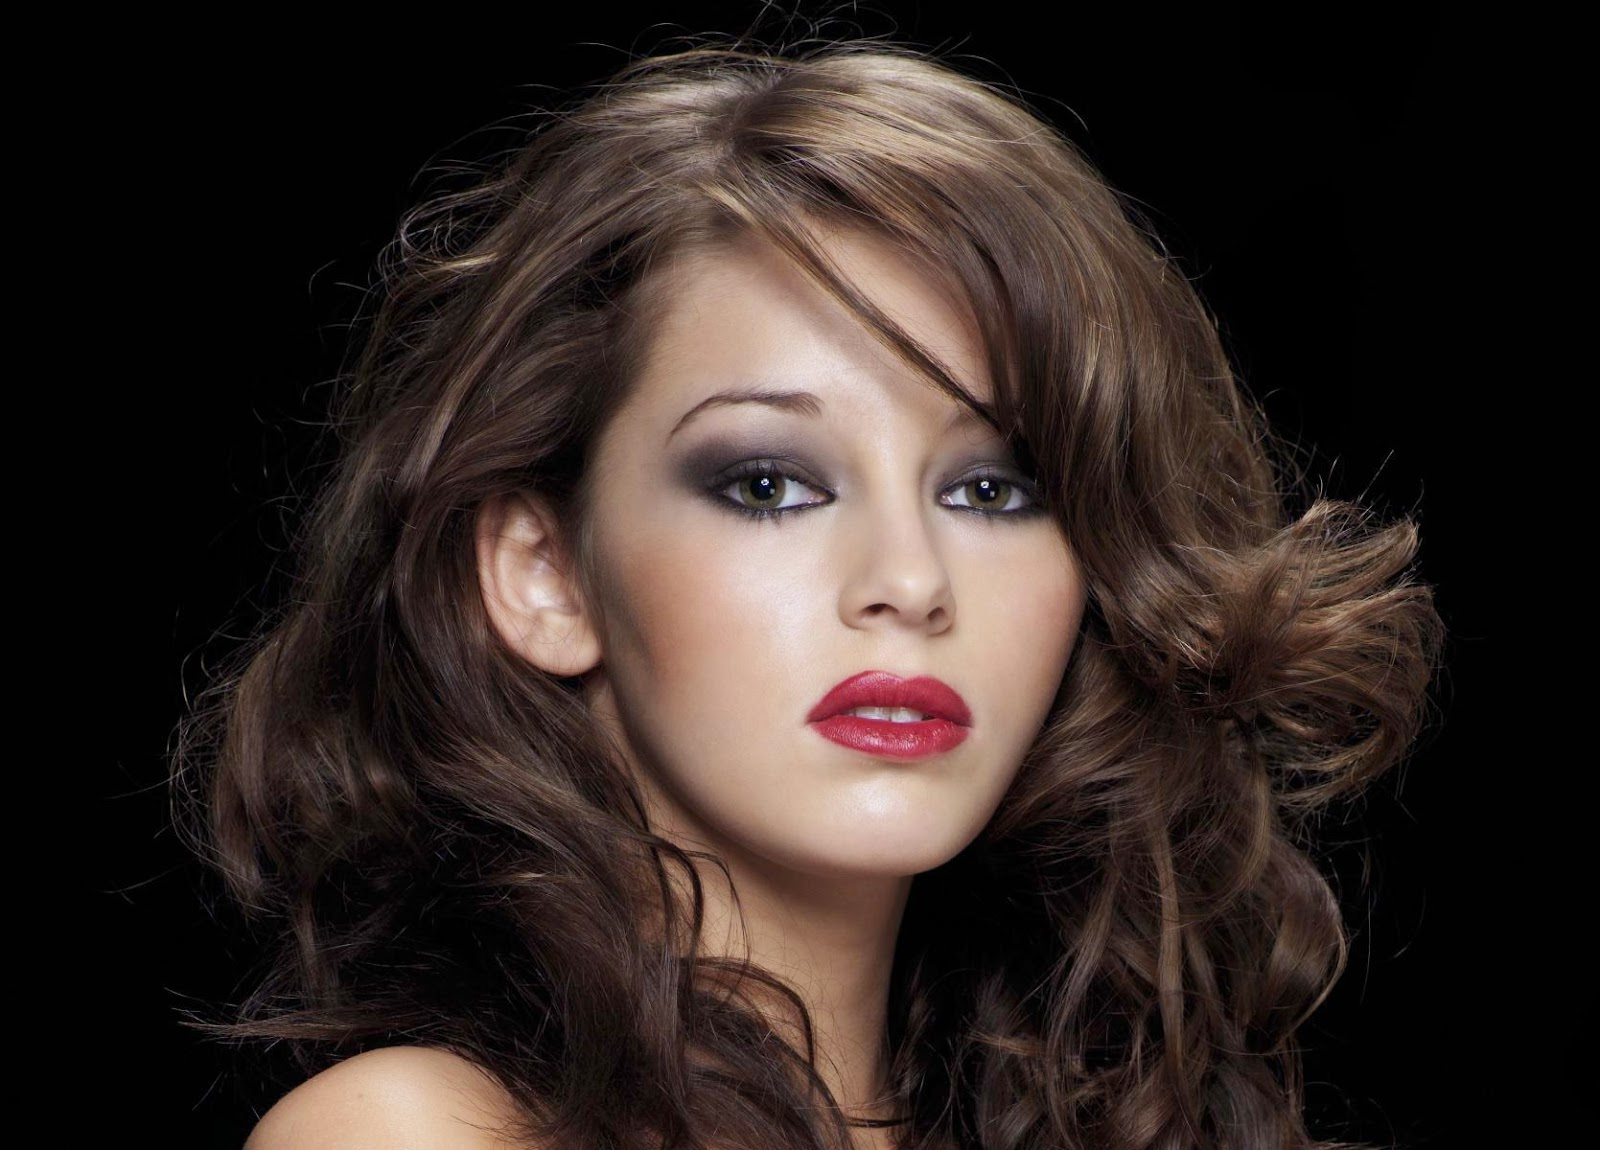 Keeley Hazell Wallpapers Free Download